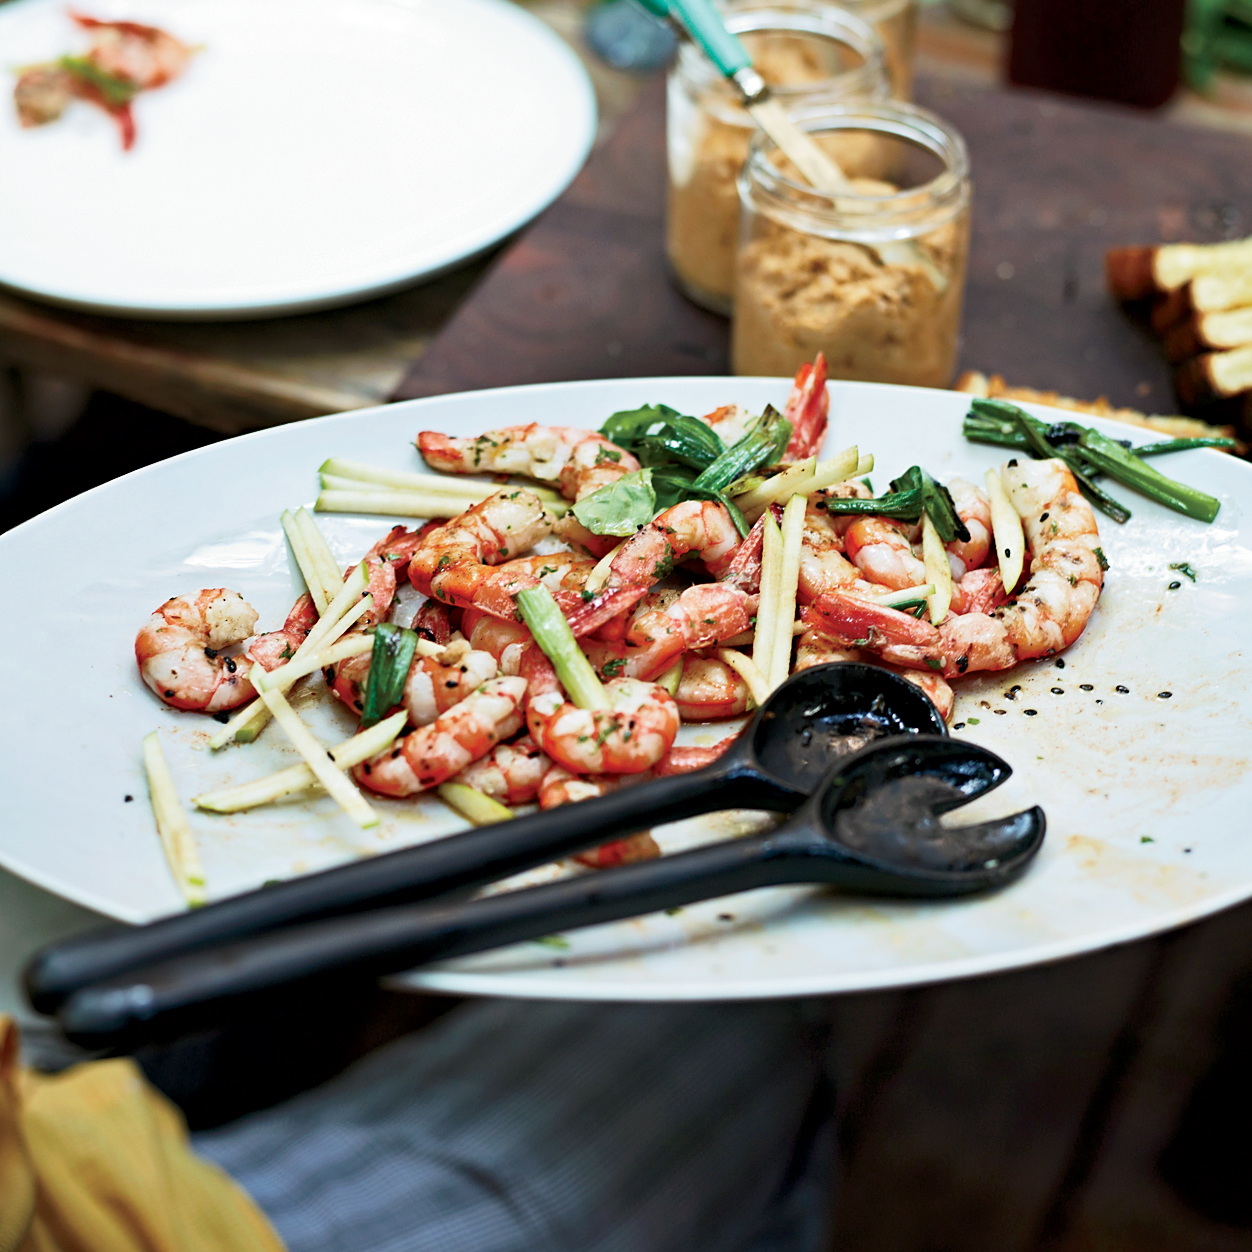 201111-r-grilled-shrimp-with-apple-and-charred-scallions.jpg